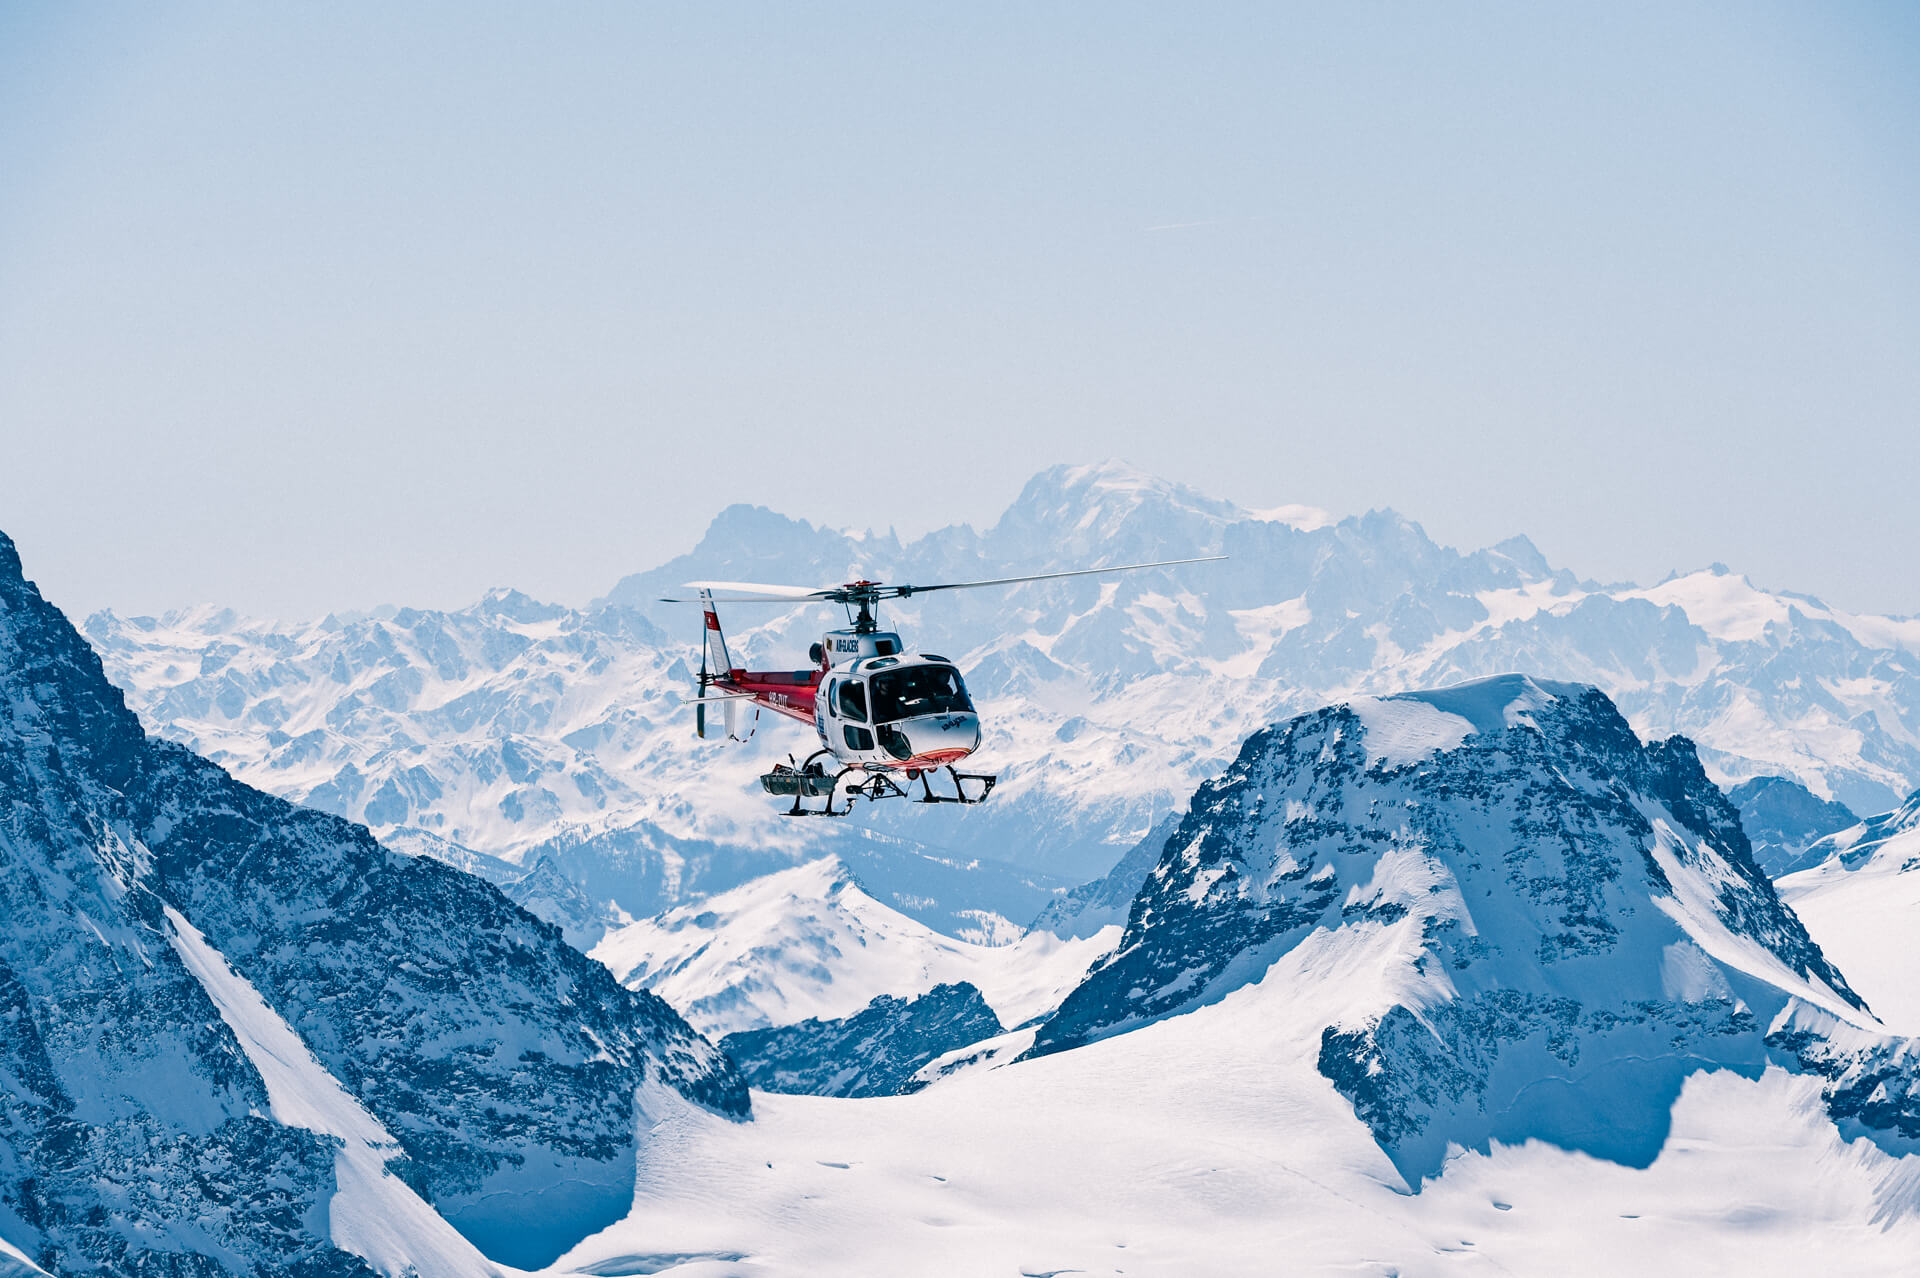 20 min Switzerland Scenic Helicopter Flight over the Jungfrau Region